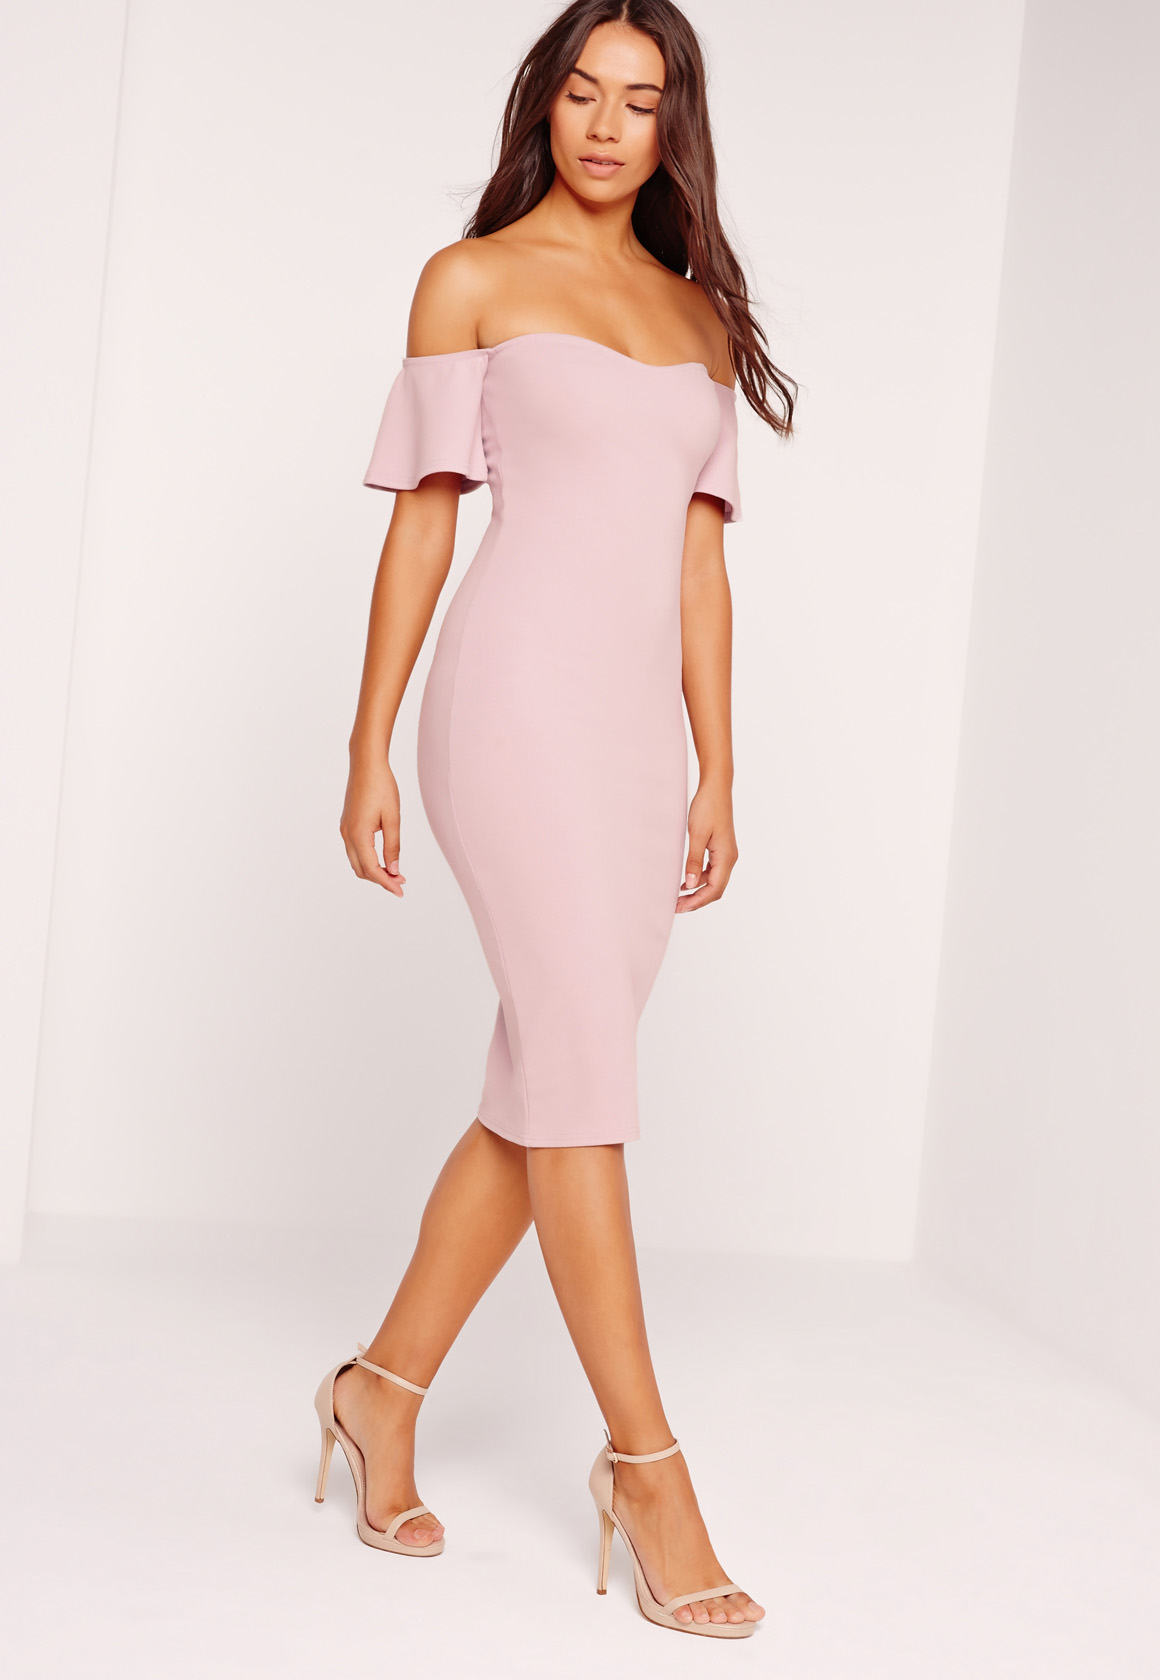 Missguided is an online fashion store, specialising in sourcing and providing the latest and most standout styles for its trend-conscious customers. Using the most appreciated and iconic celebrities as a blueprint upon which to find the finest clothing out there, Missguided have in a few short years become overwhelmingly popular amongst the.